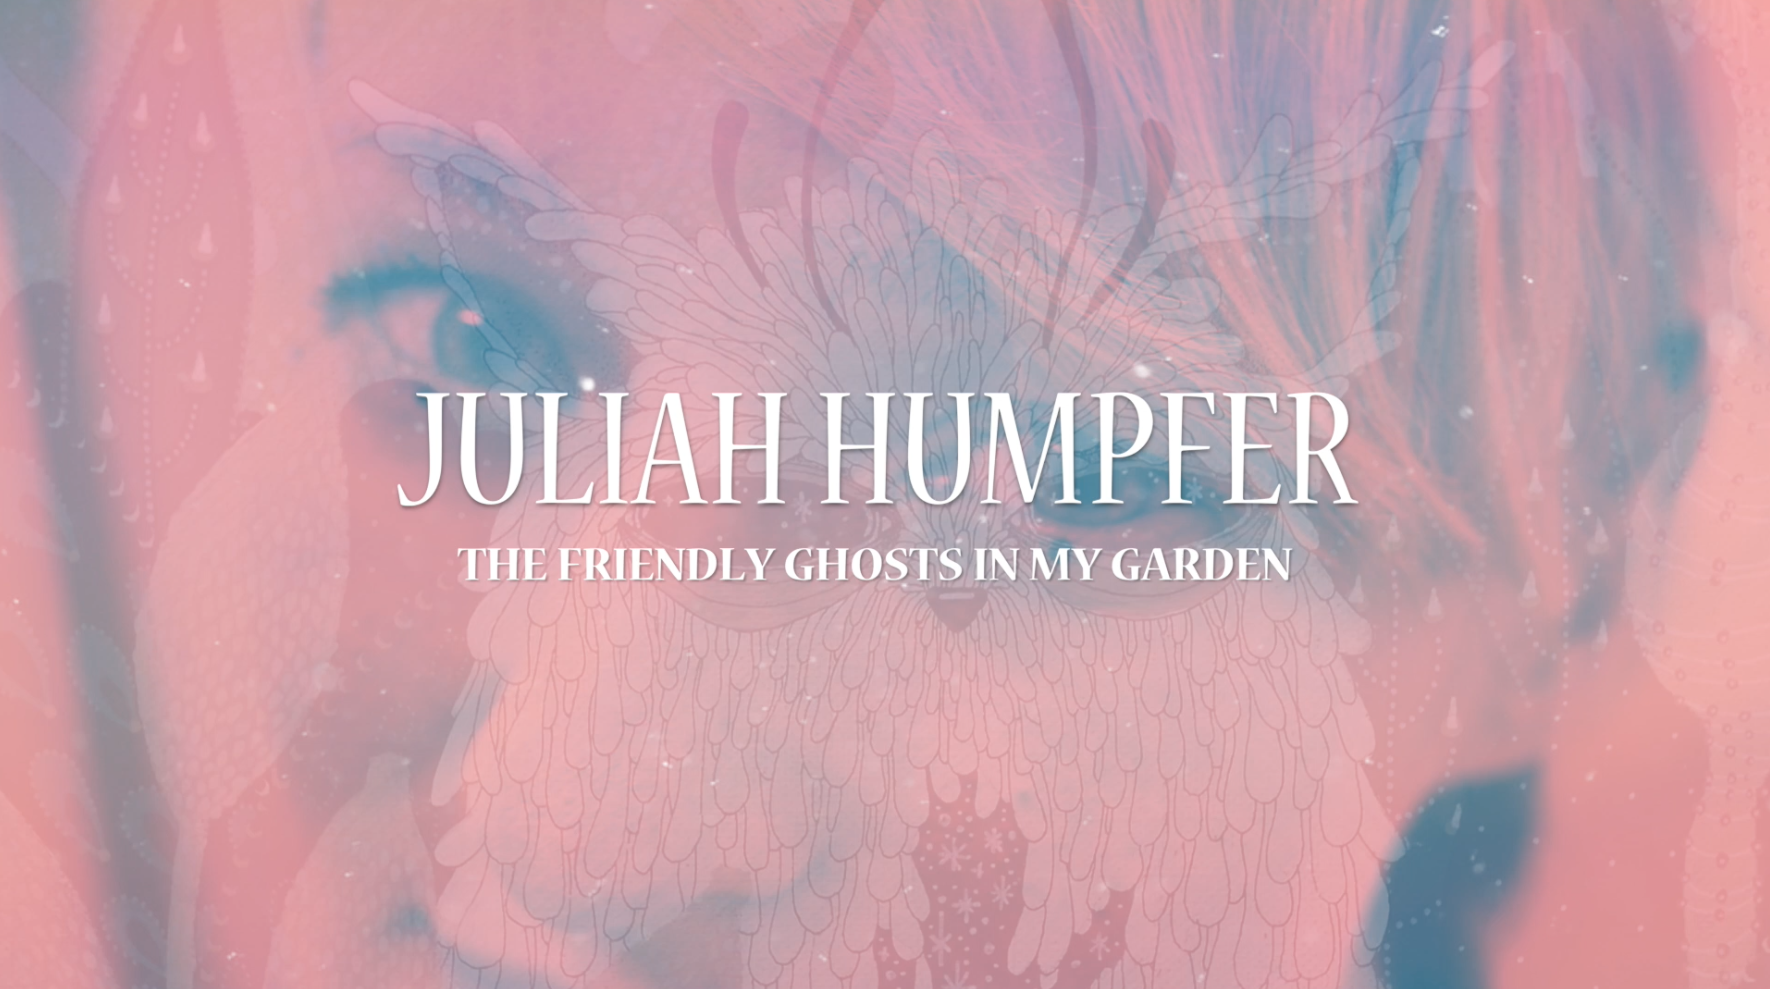 Juliah Humpfer – The friendly ghosts in my garden